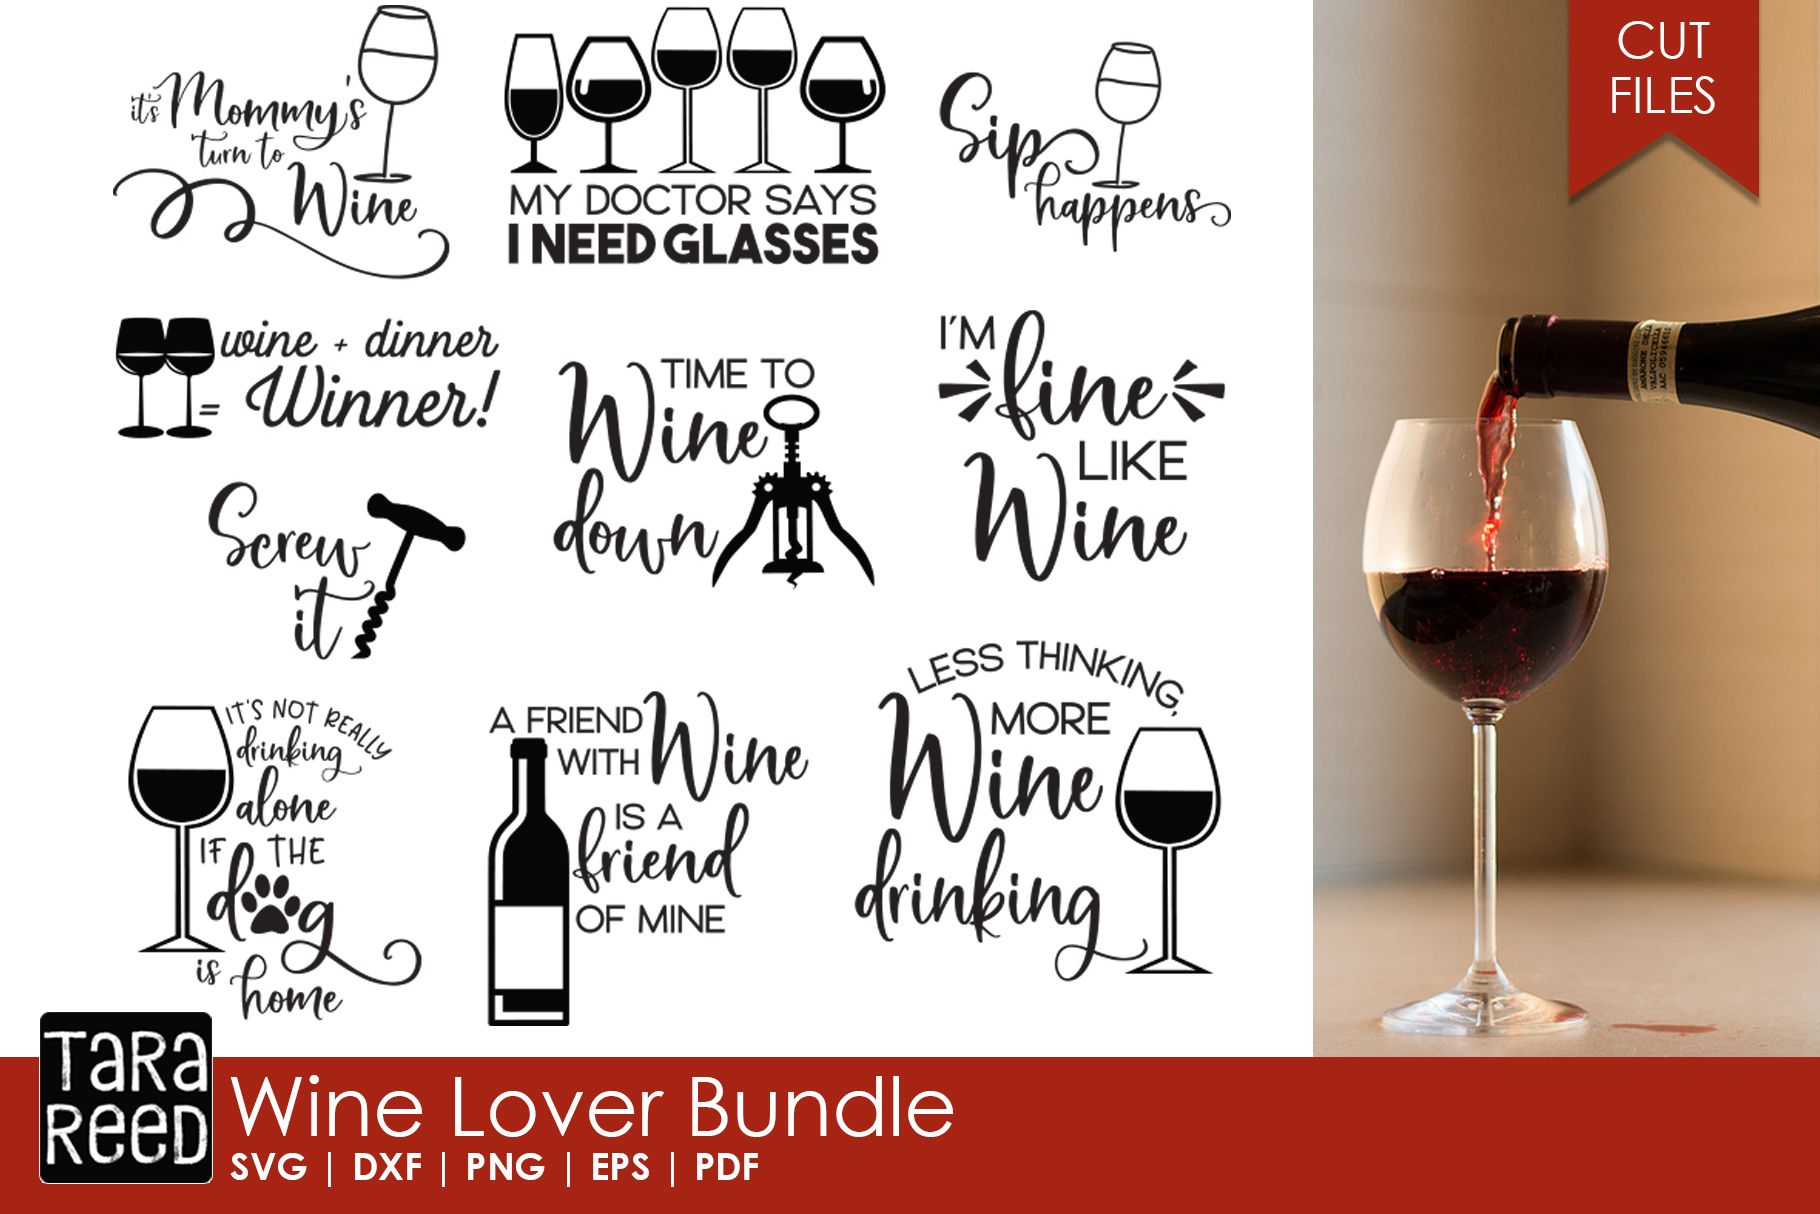 Wine Lover Bundle Wine puns, Wine signs, Wine time